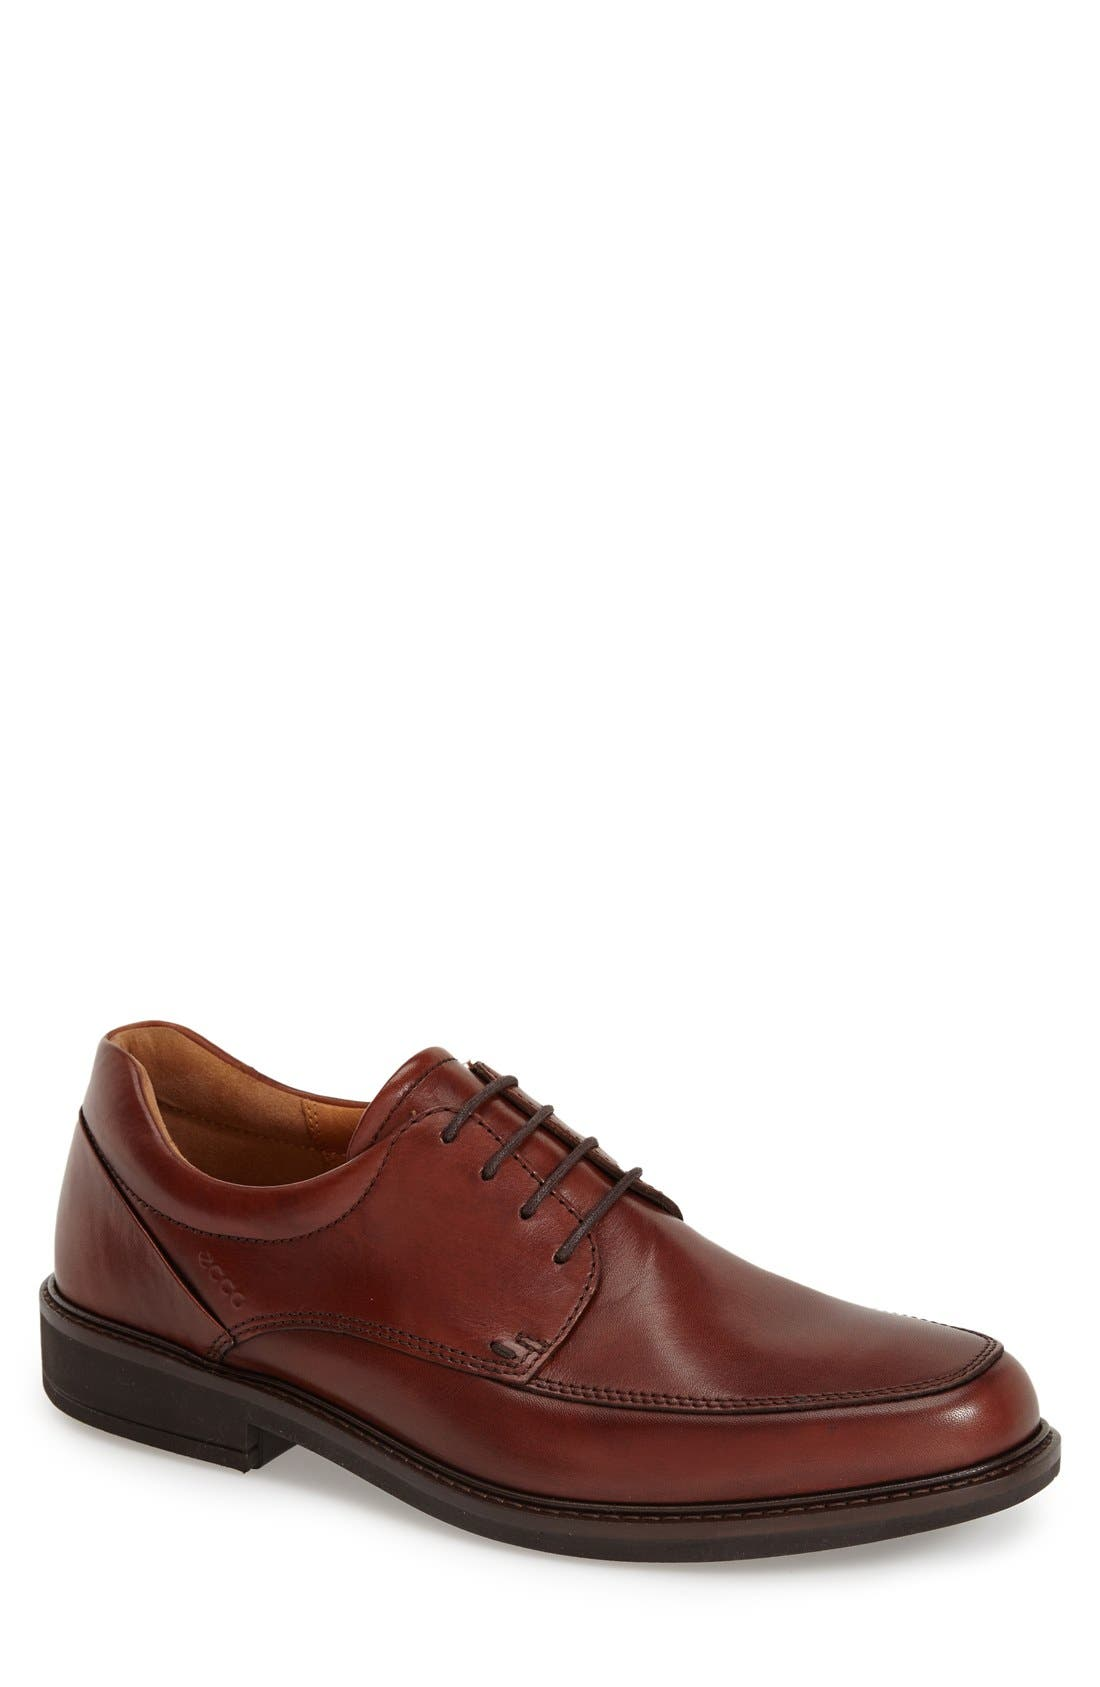 Alternate Image 1 Selected - ECCO 'Holton' Apron Toe Derby (Men)